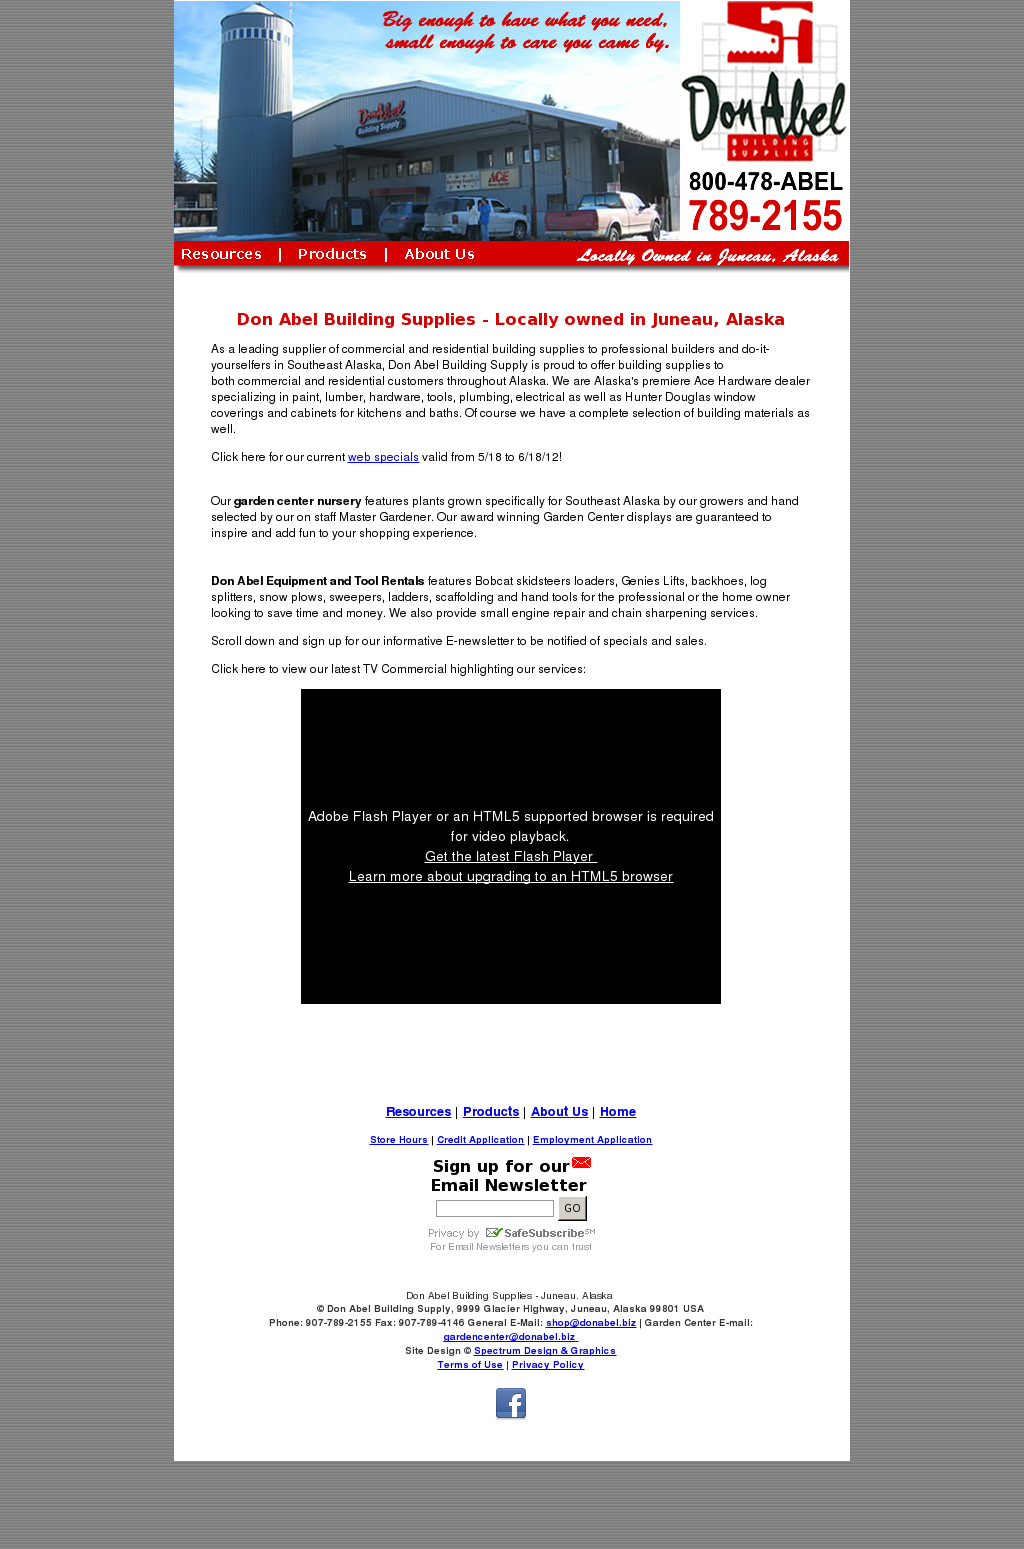 Don Abel Building Supply Competitors, Revenue and Employees